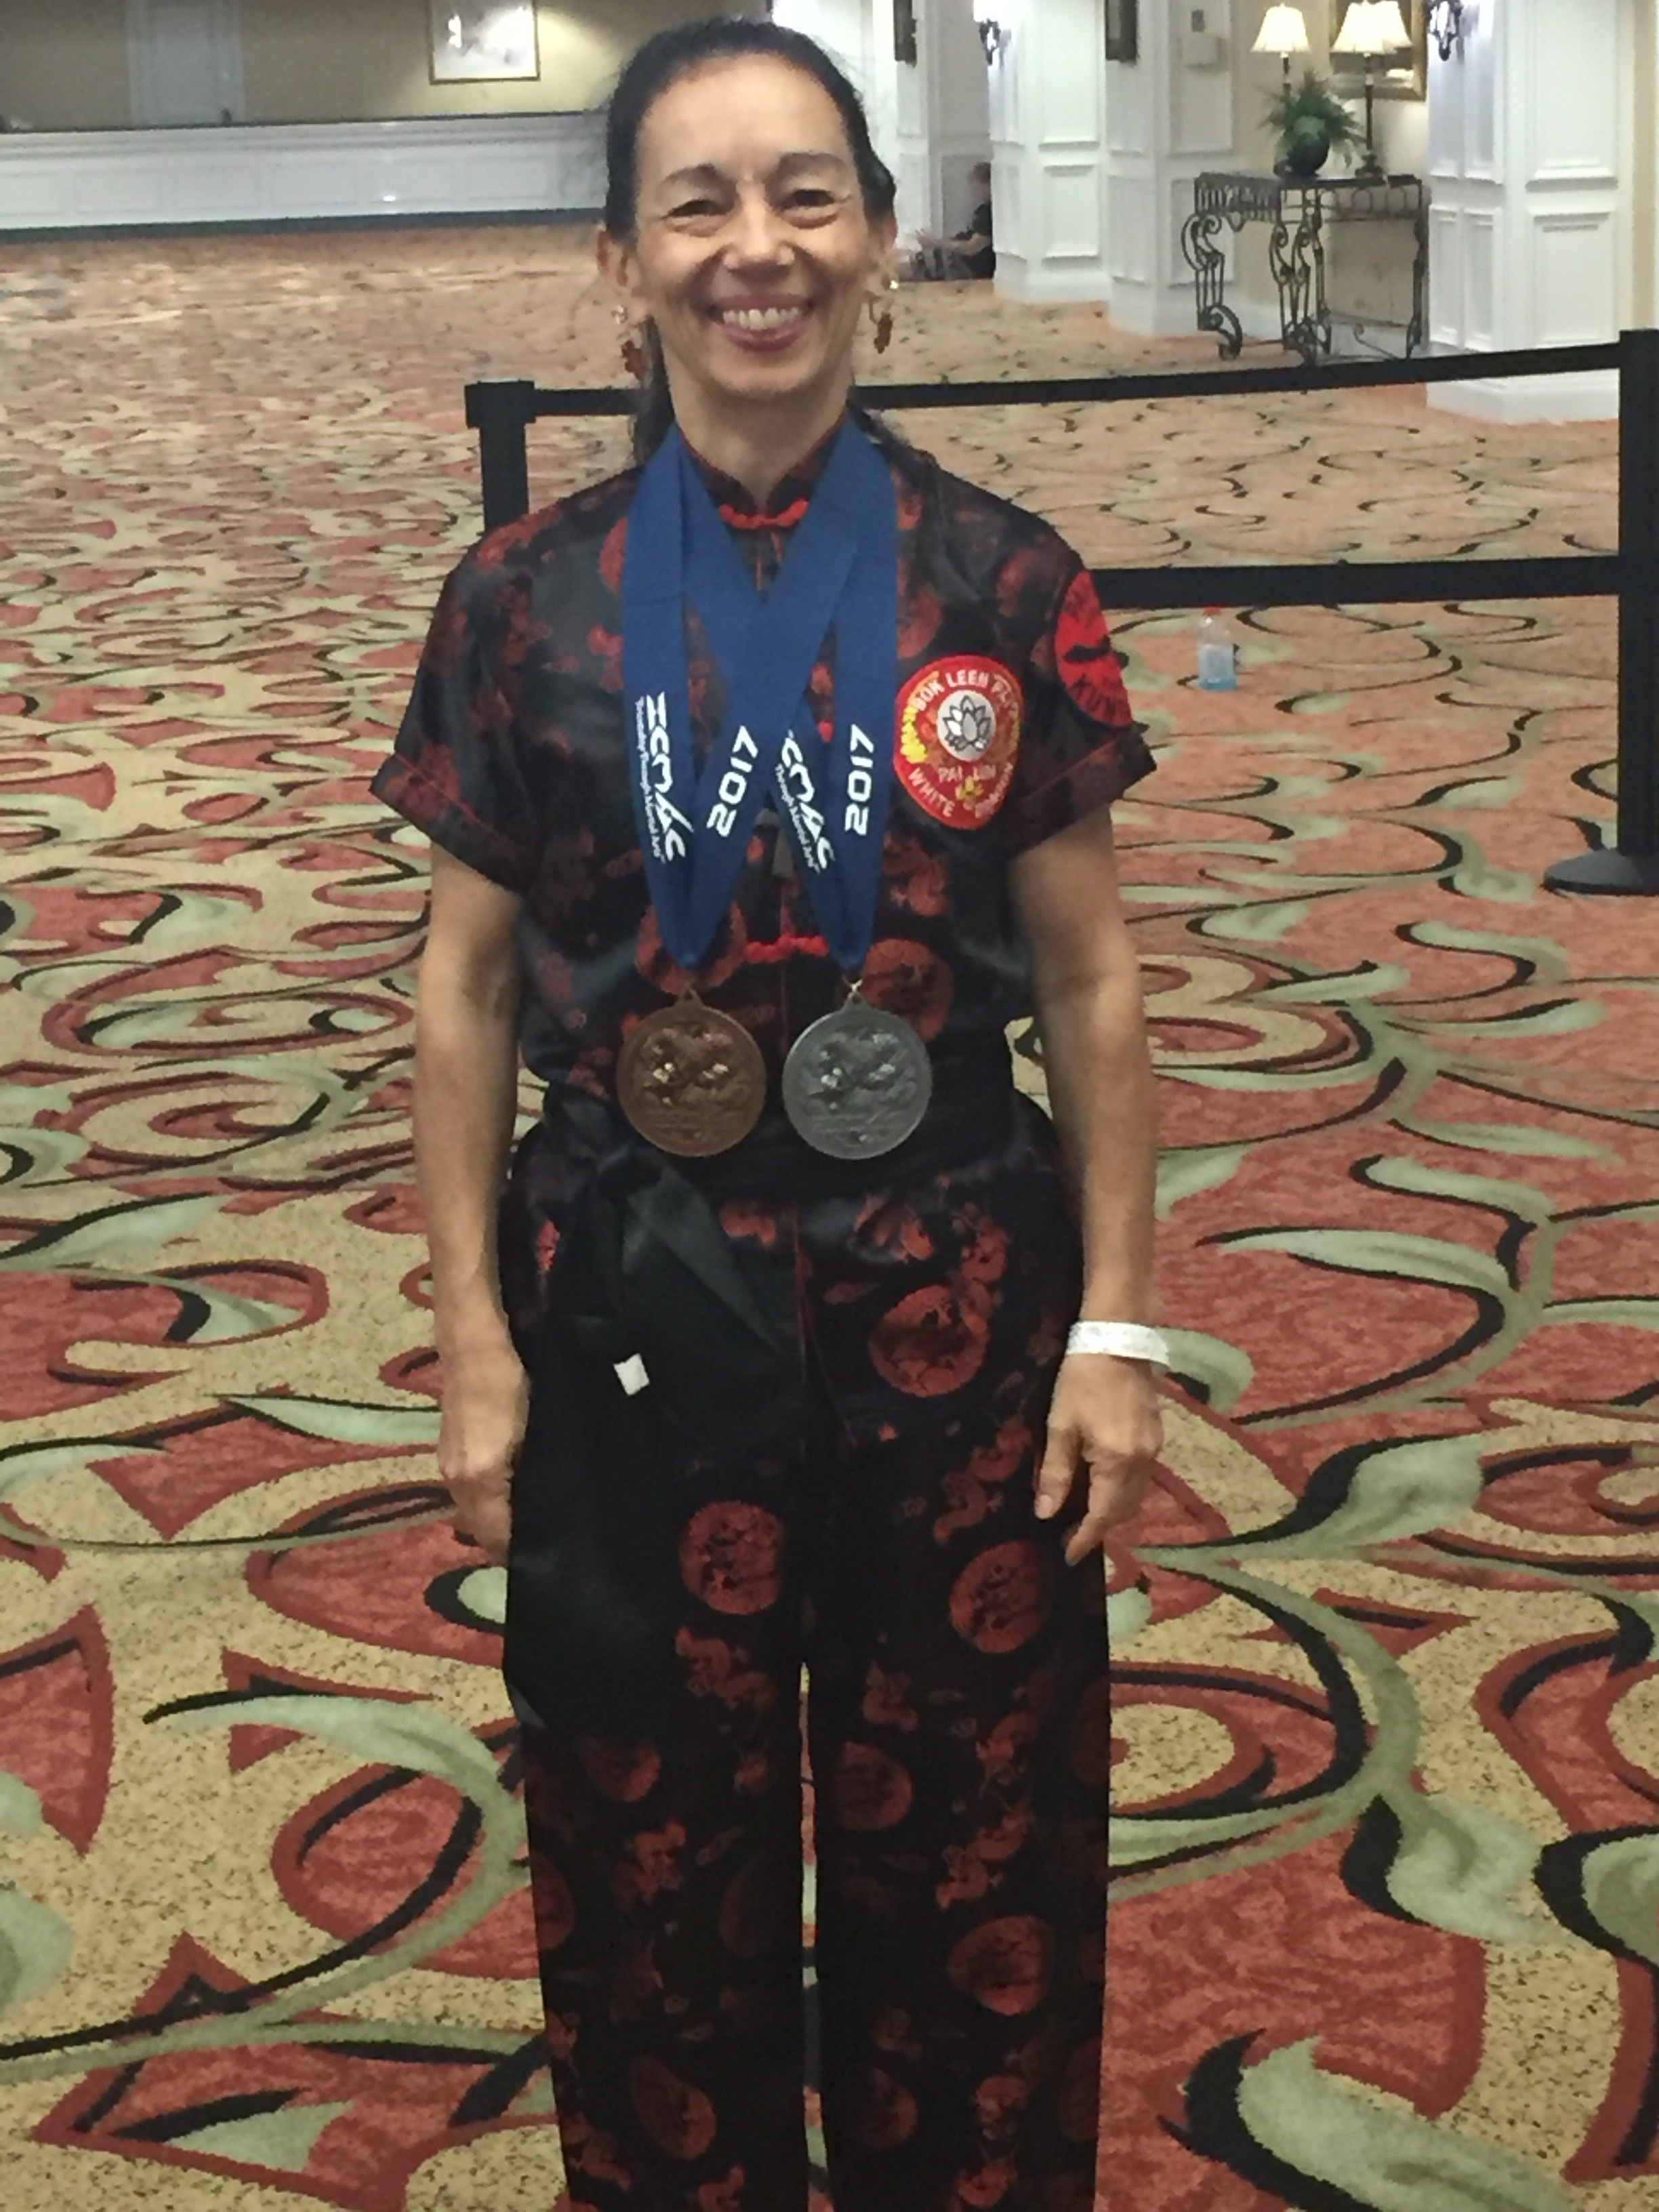 Met so many talented martial artists and great people in Orlando. The competitions were followed by astunning performance of demonstrators from martial arts schools around the world! -